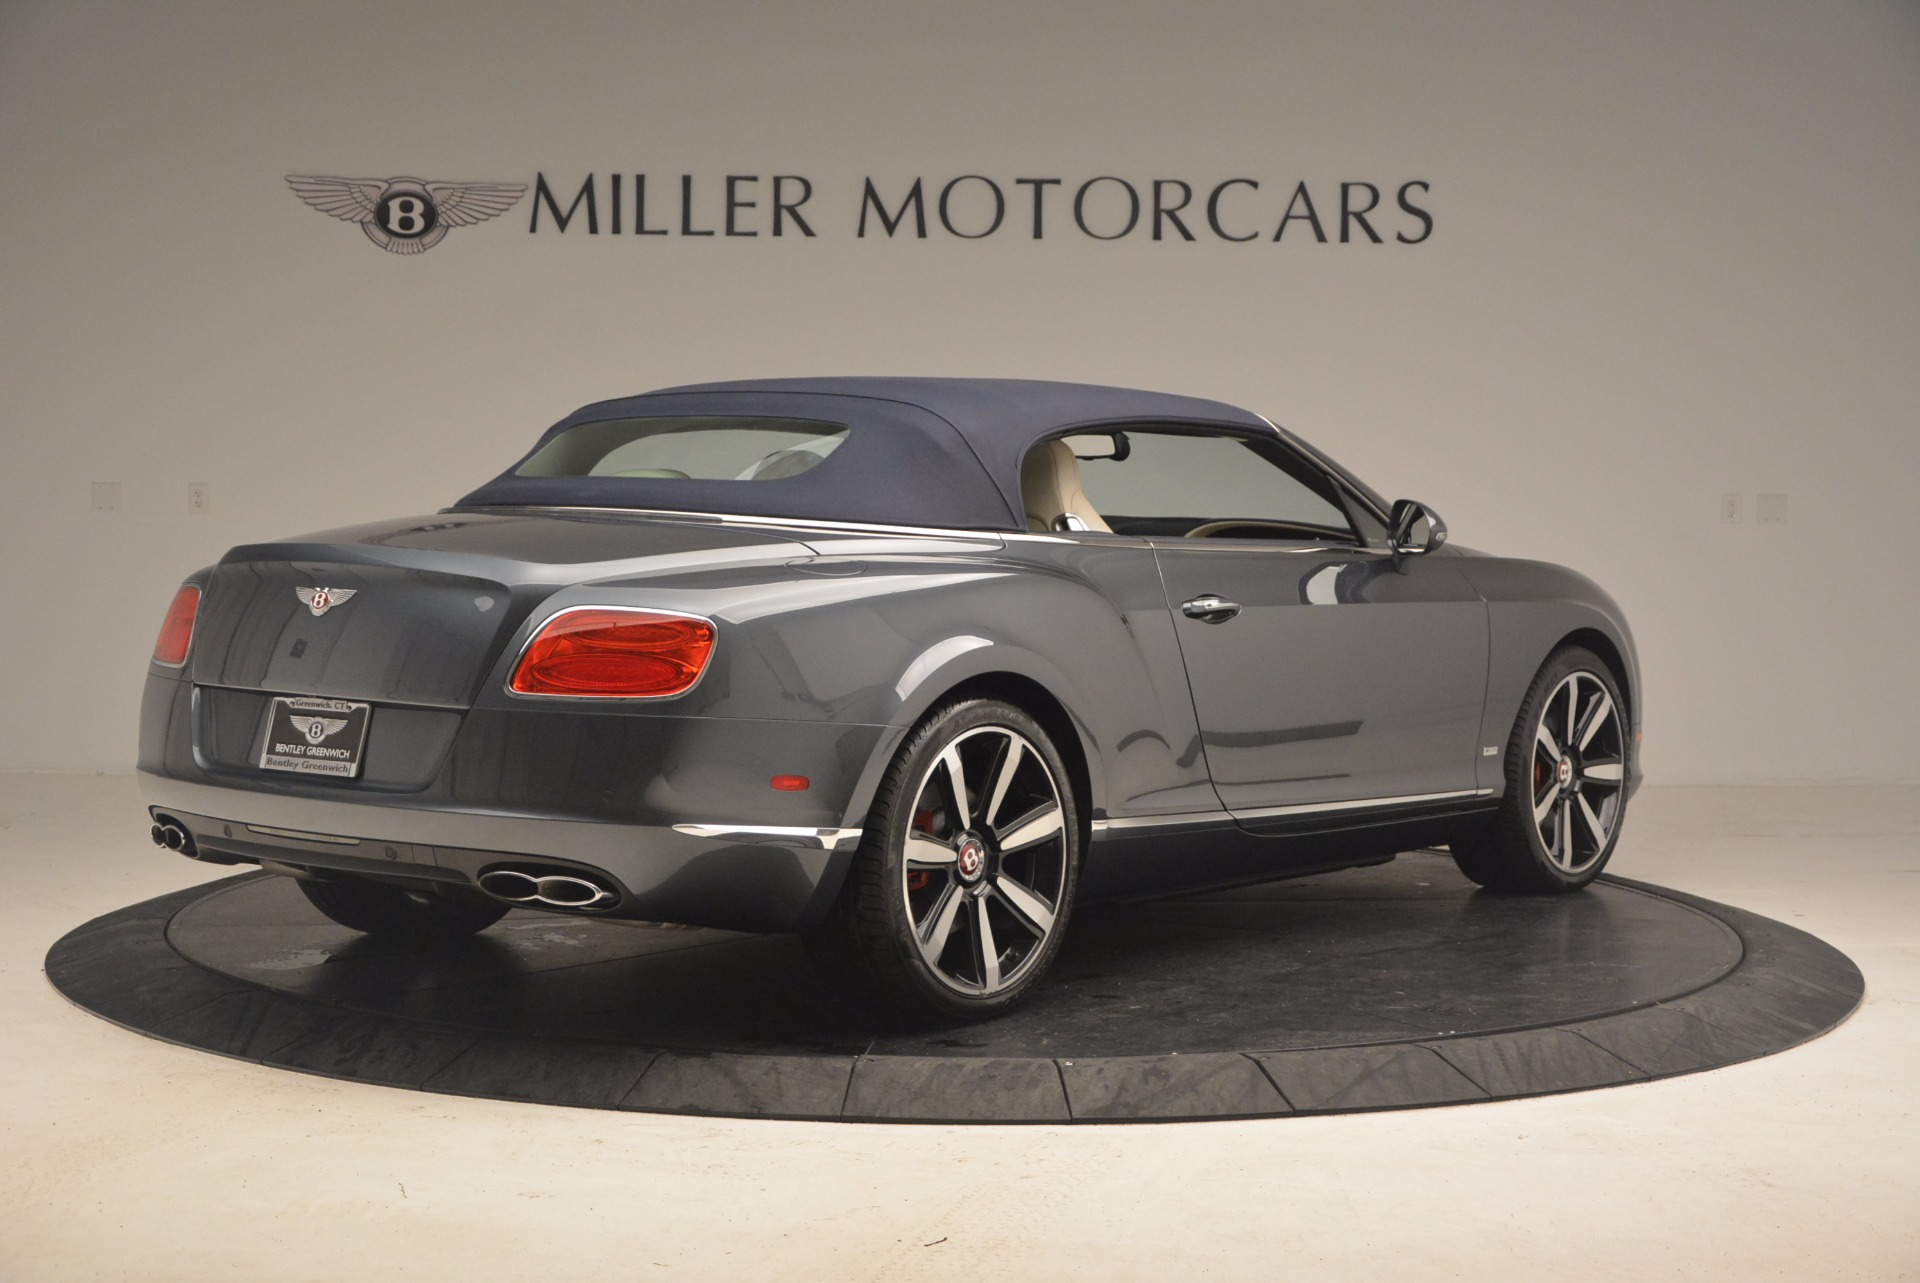 Used 2013 Bentley Continental GT V8 Le Mans Edition, 1 of 48 For Sale In Greenwich, CT. Alfa Romeo of Greenwich, 7226 1288_p21